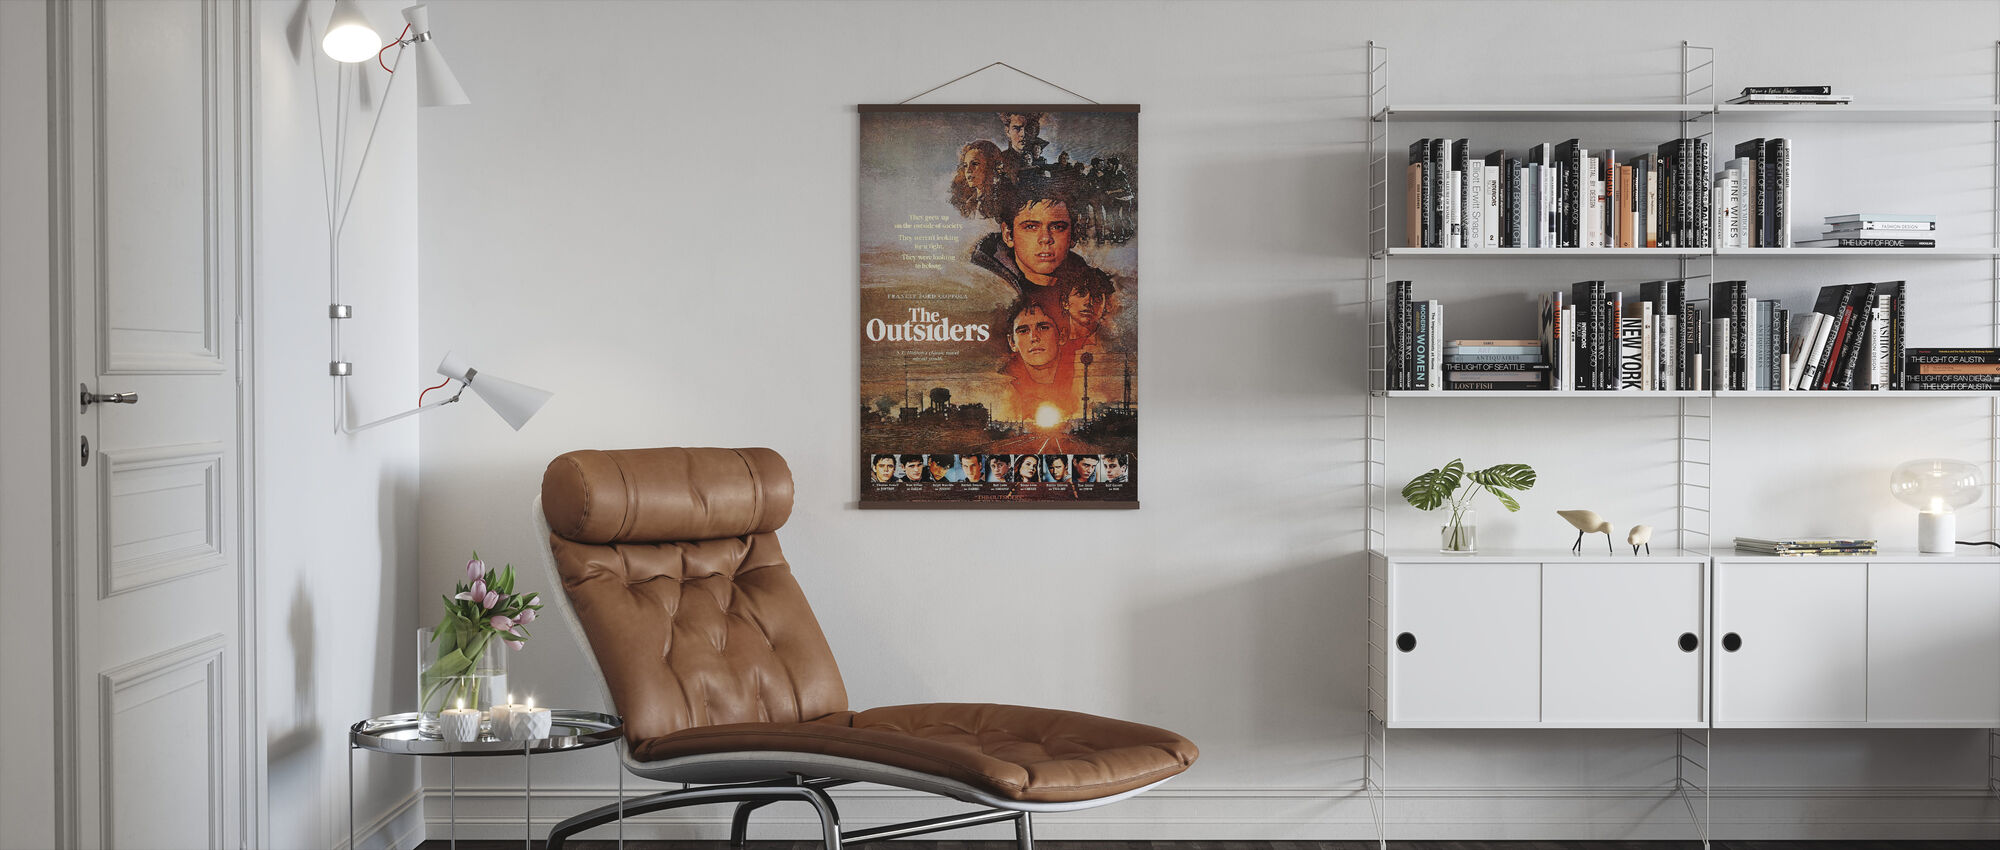 Outsiders - Poster - Living Room